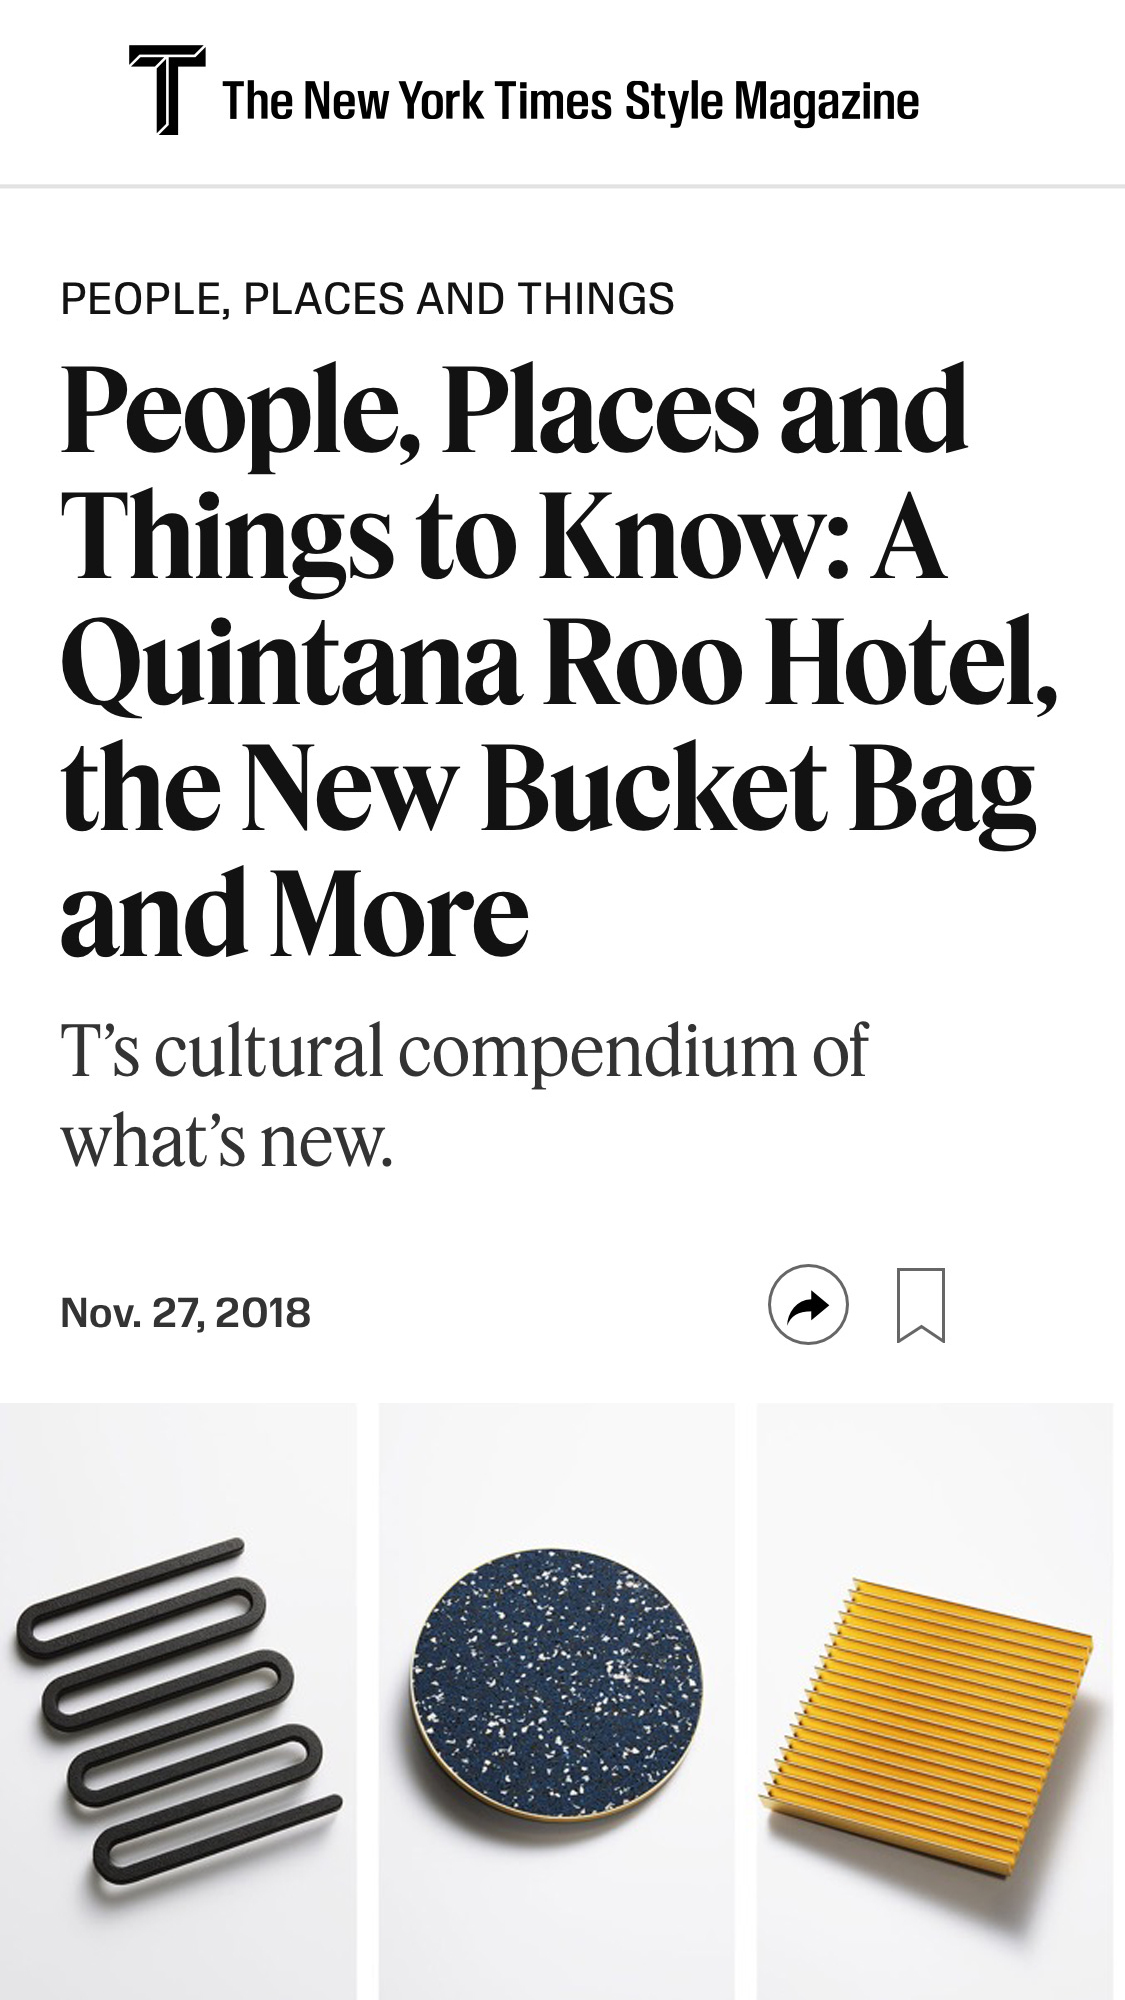 NYTIMES-SLASH-OBJECTS.jpg